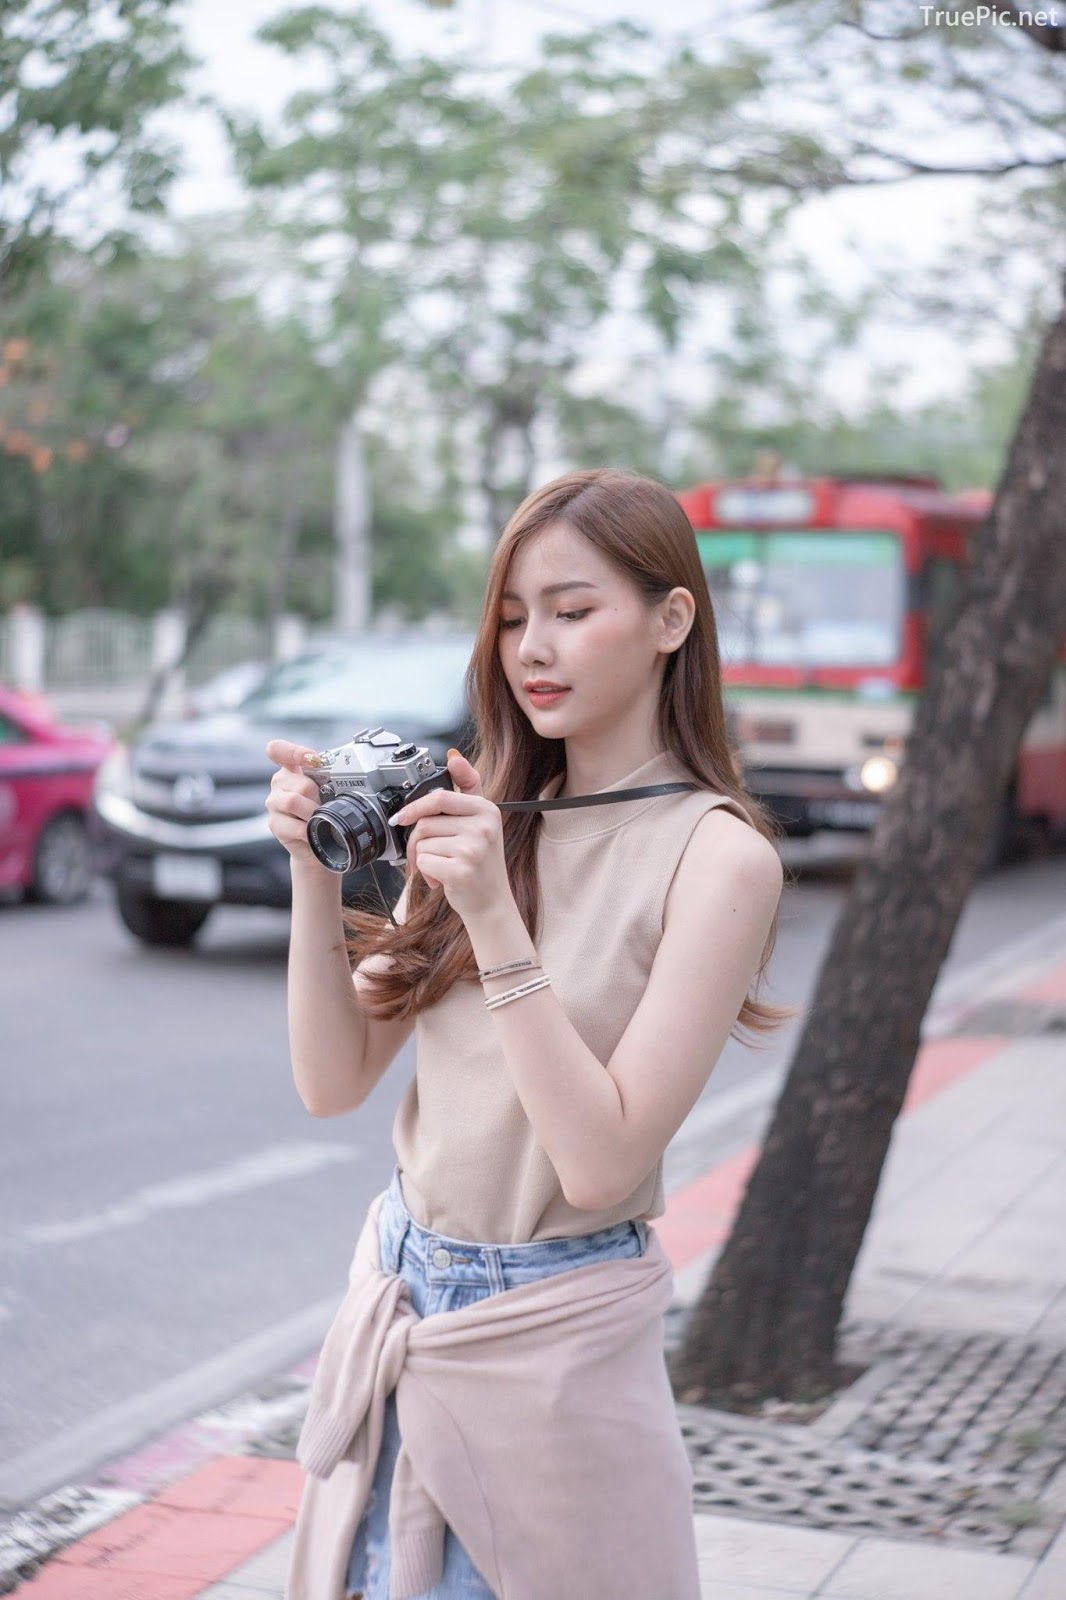 Thailand beautiful model - Pla Kewalin Udomaksorn - A beautiful morning with a cute girl - Picture 6